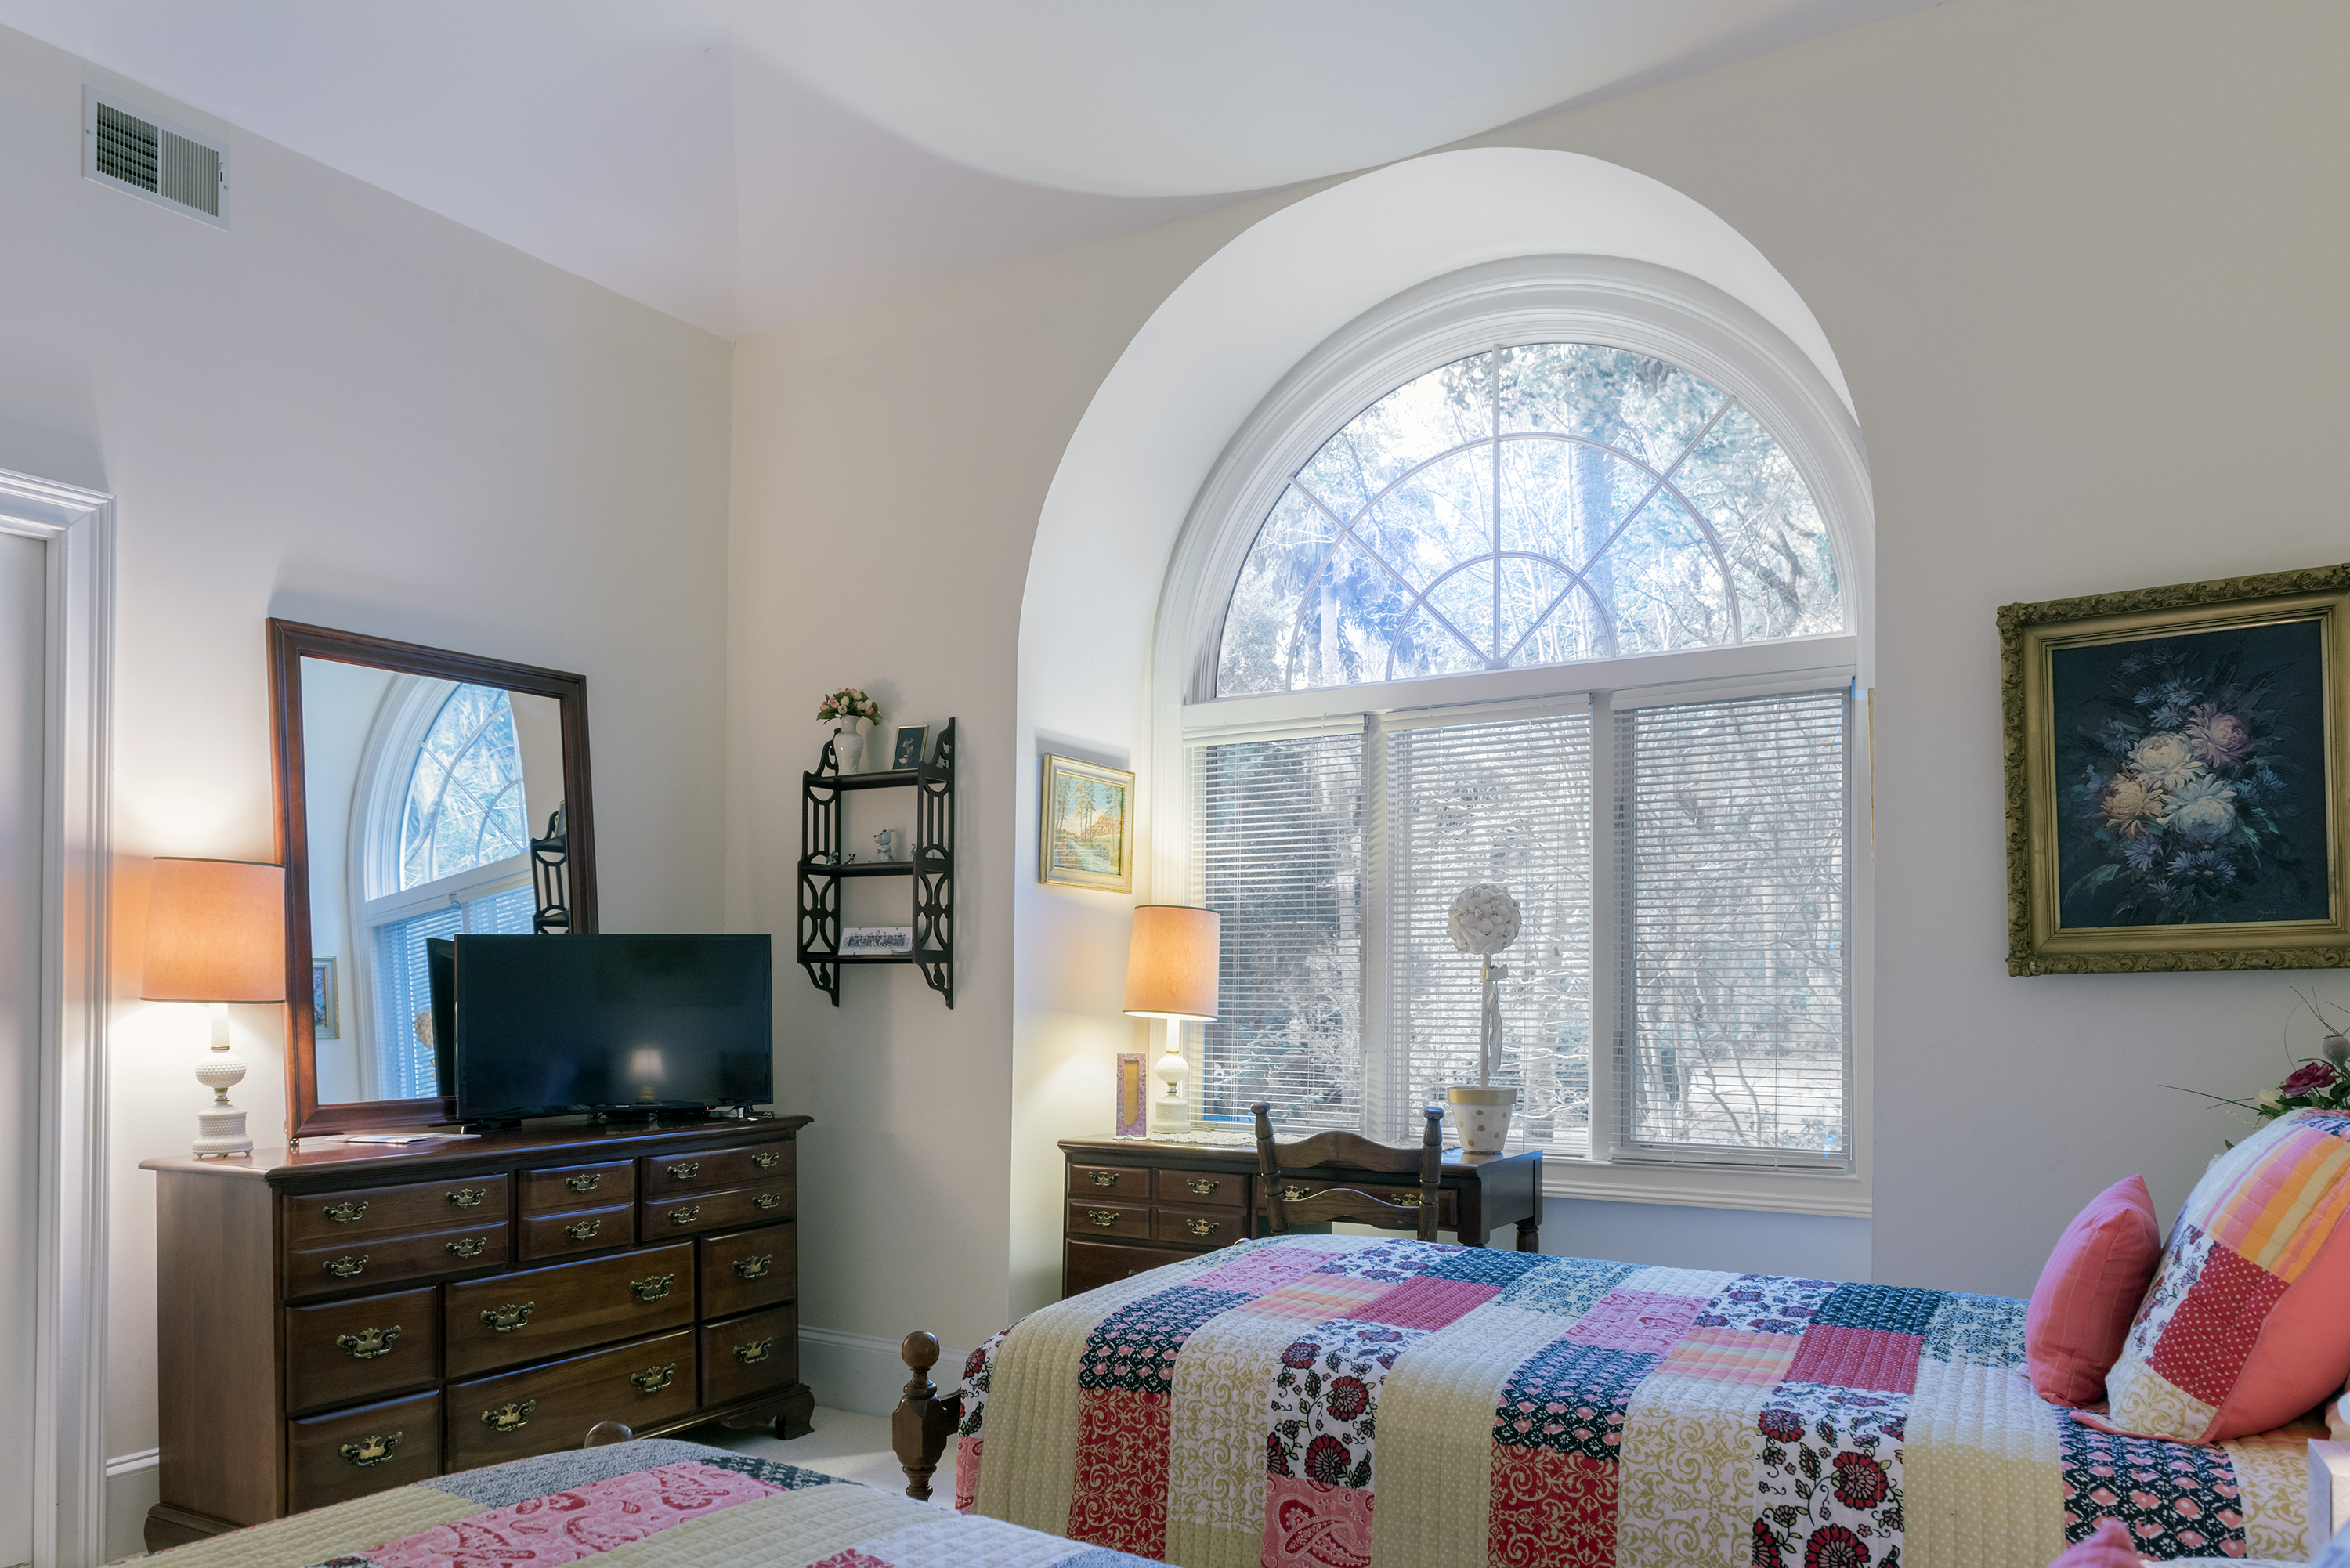 There is a new flat screen TV and a beautiful light filled Palladian window.